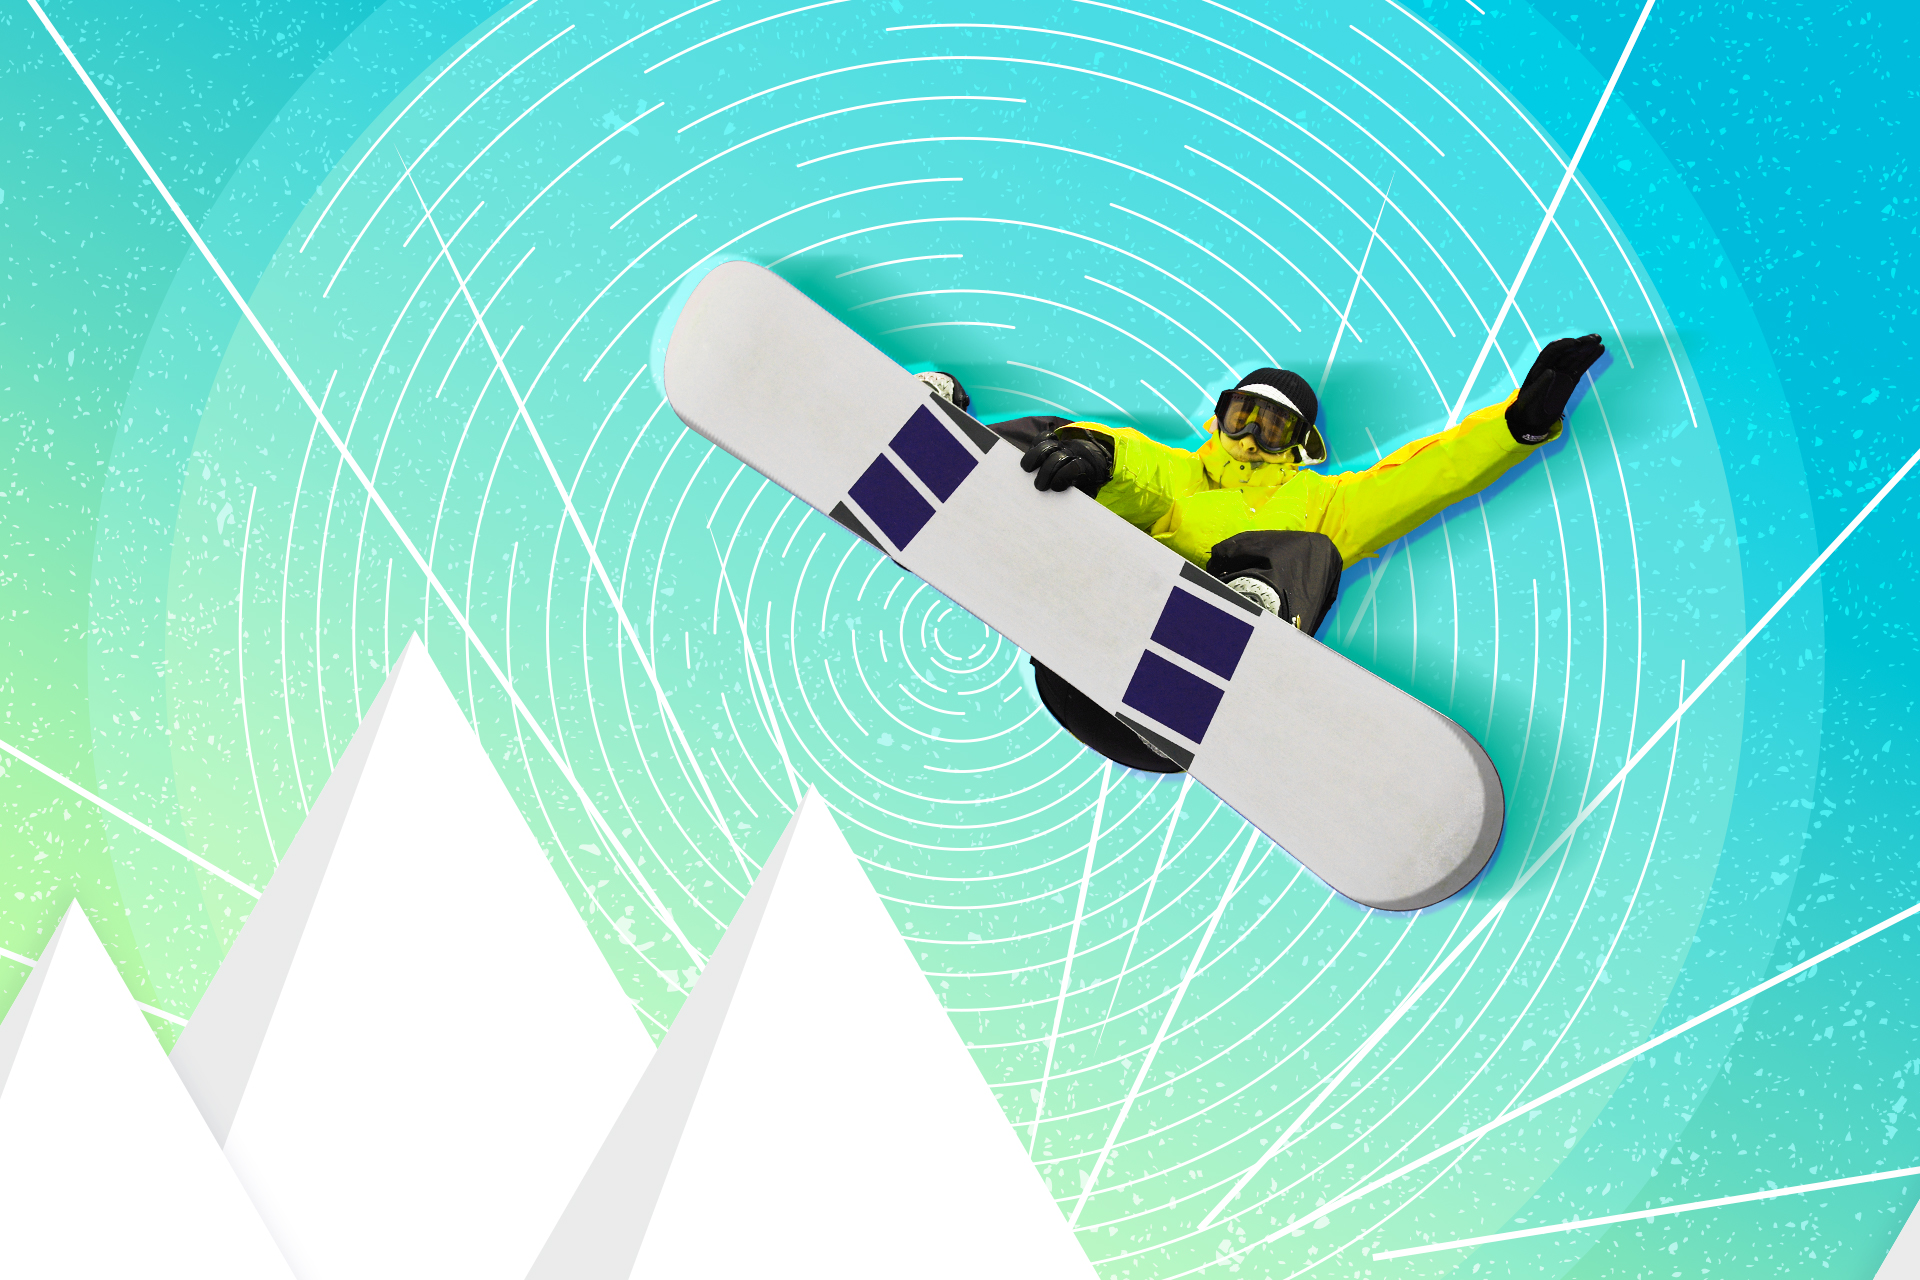 snowboarder-jumping-from-a-mountain